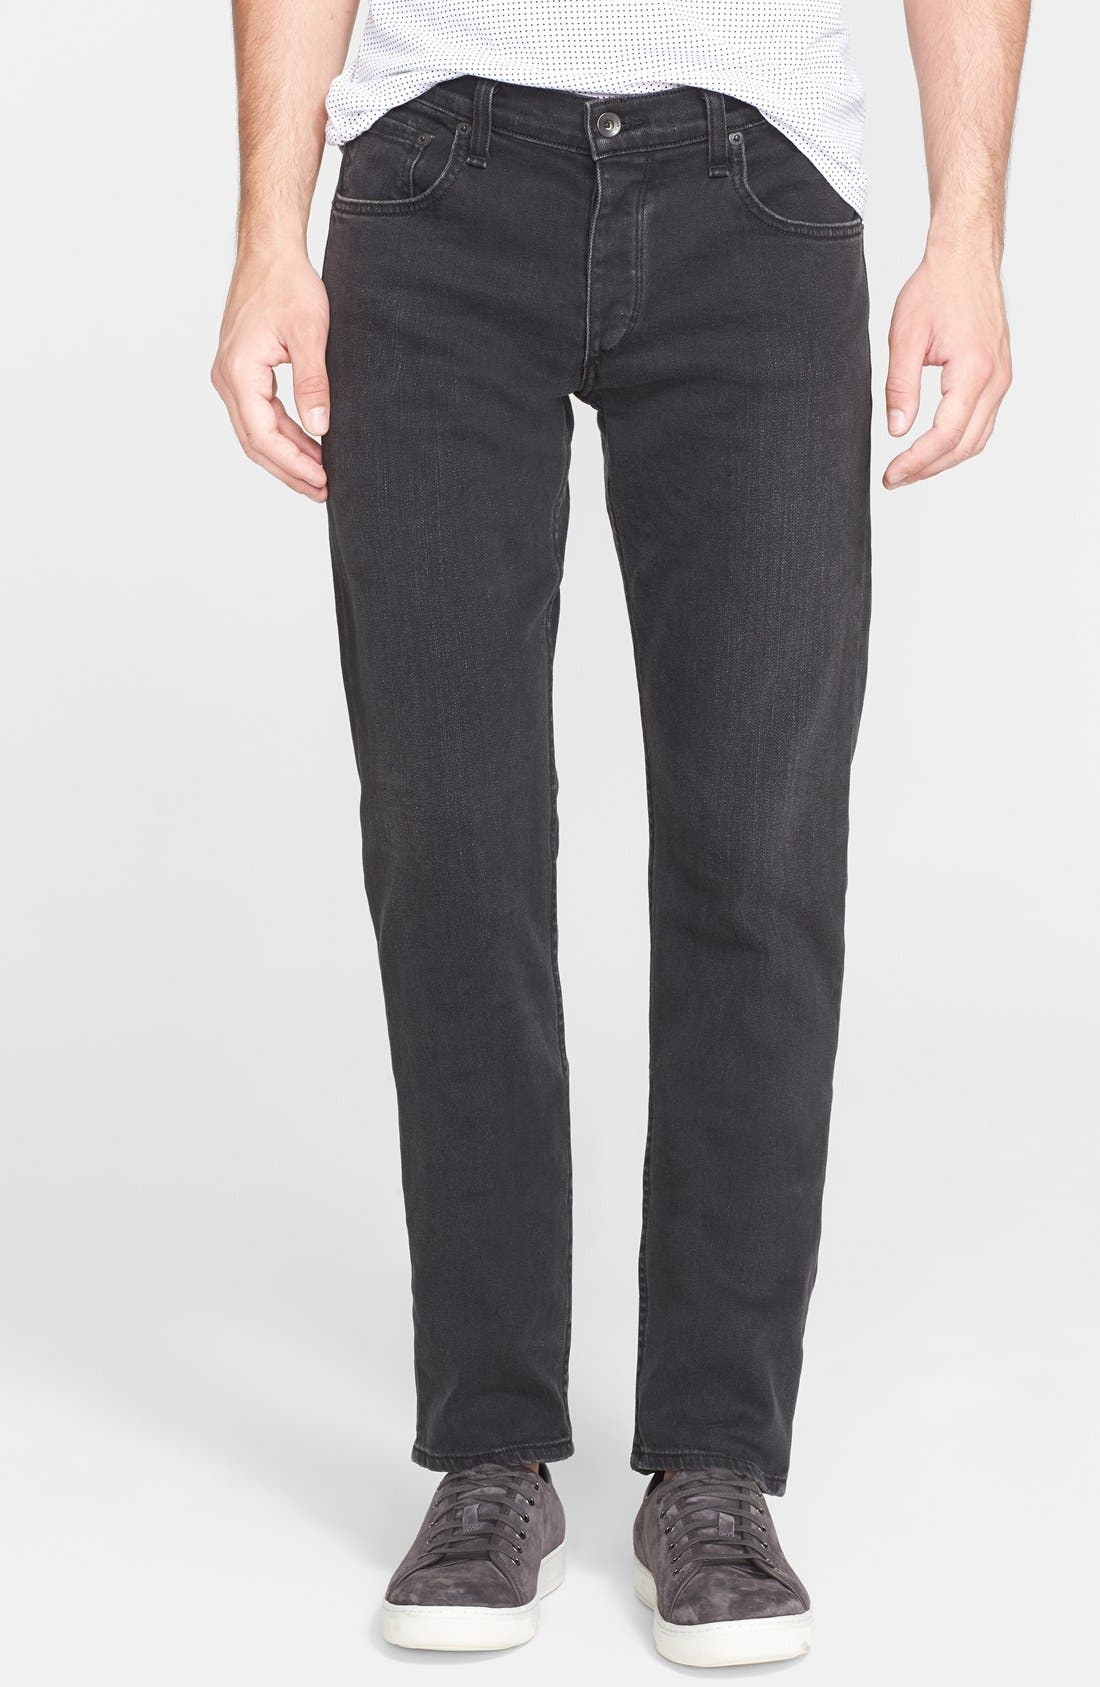 'Fit 2' Slim Fit Jeans,                             Main thumbnail 1, color,                             Rock Washed Black